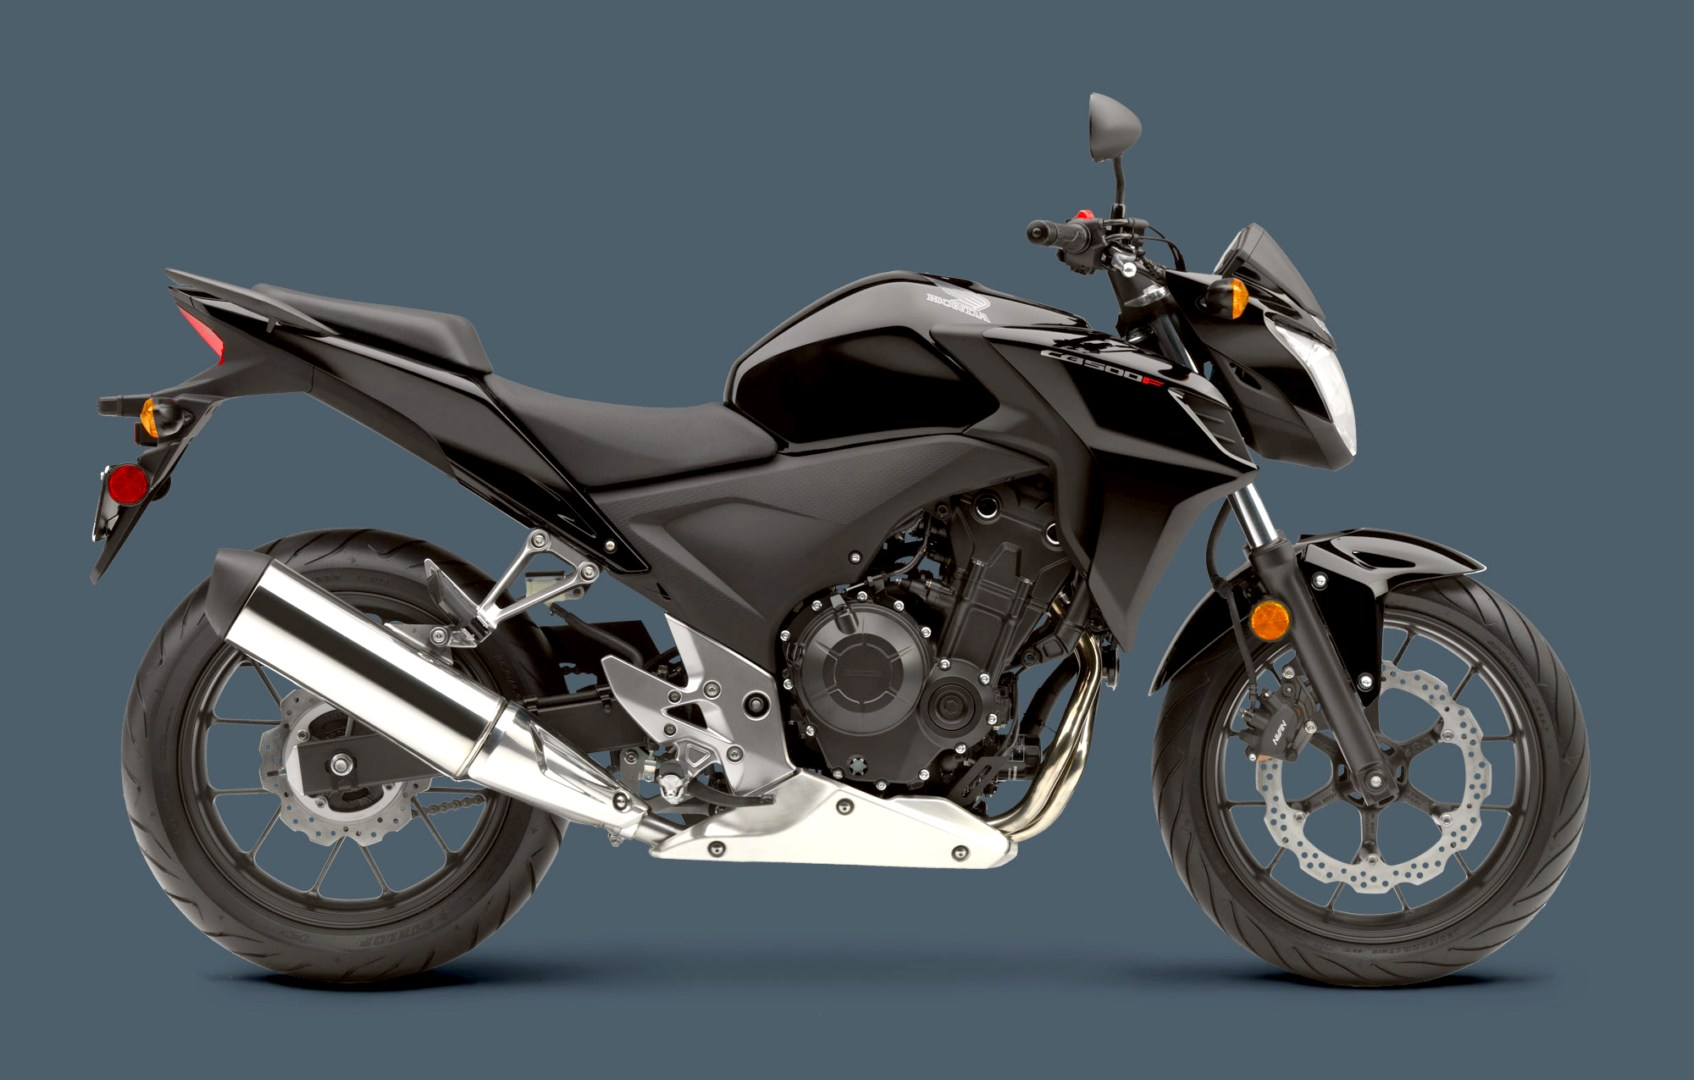 2013 honda cb500f detailed official price revealed